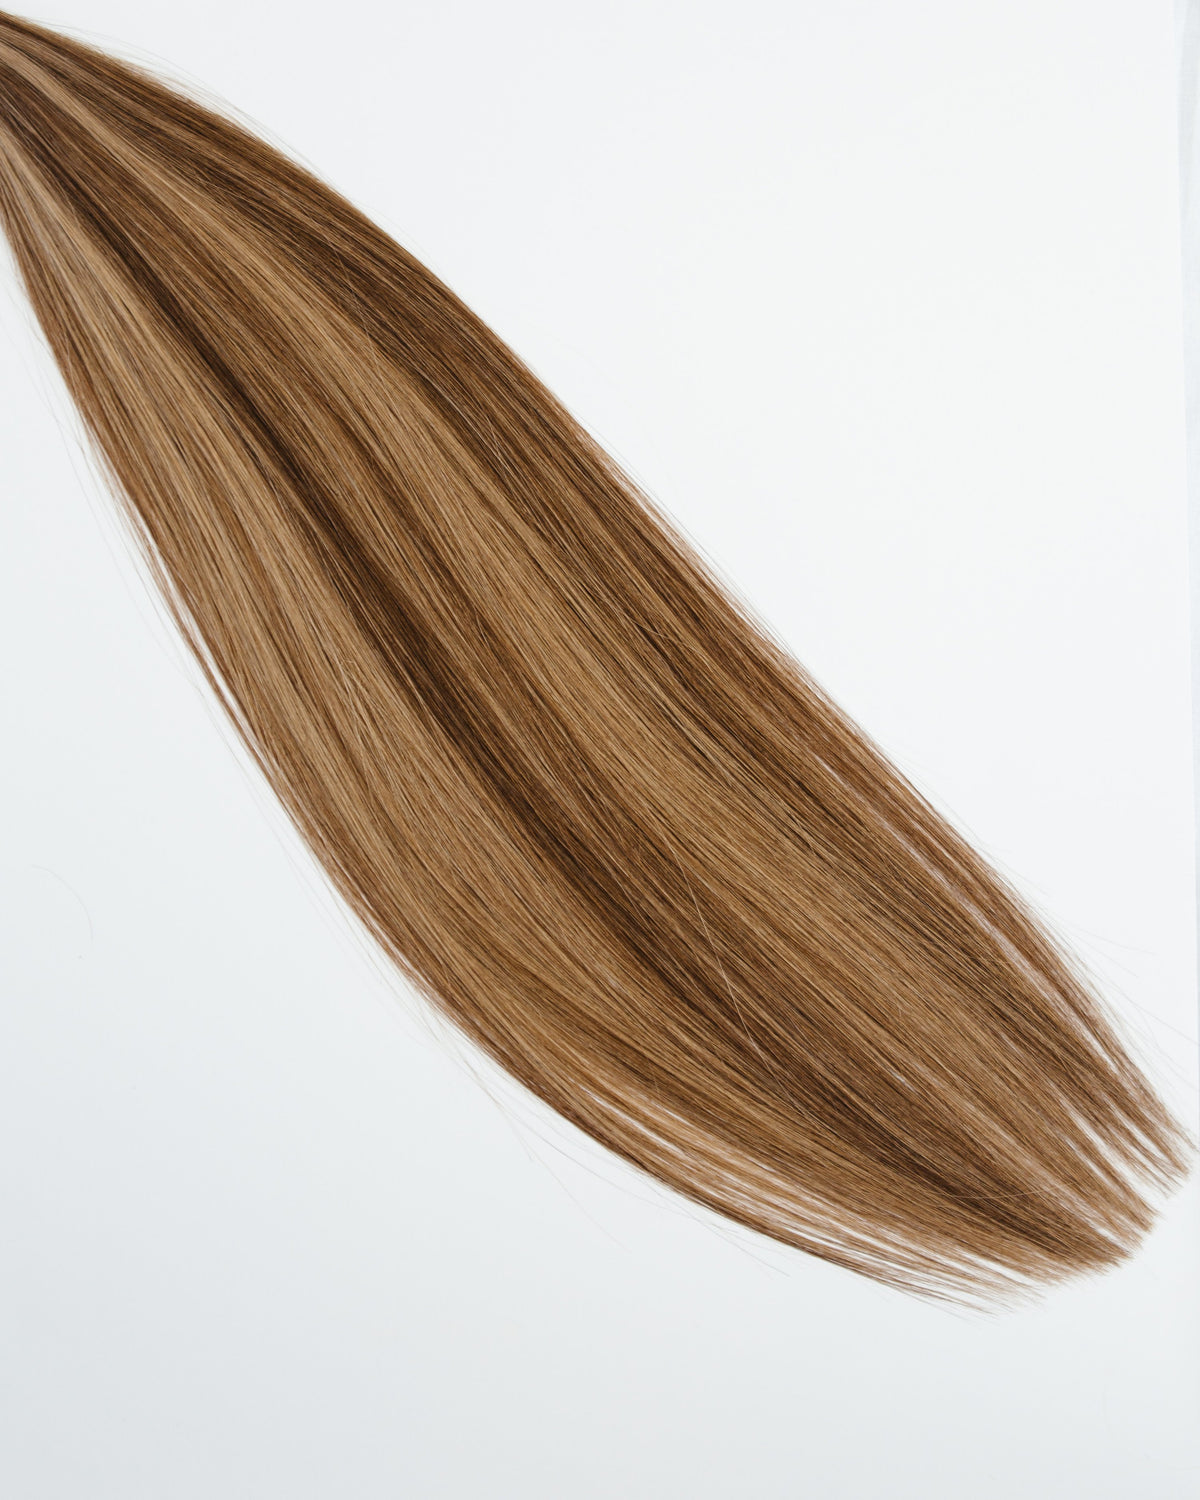 I-Tip - Laced Hair I-Tip Extensions Dimensional #4/8 (Cappuccino)